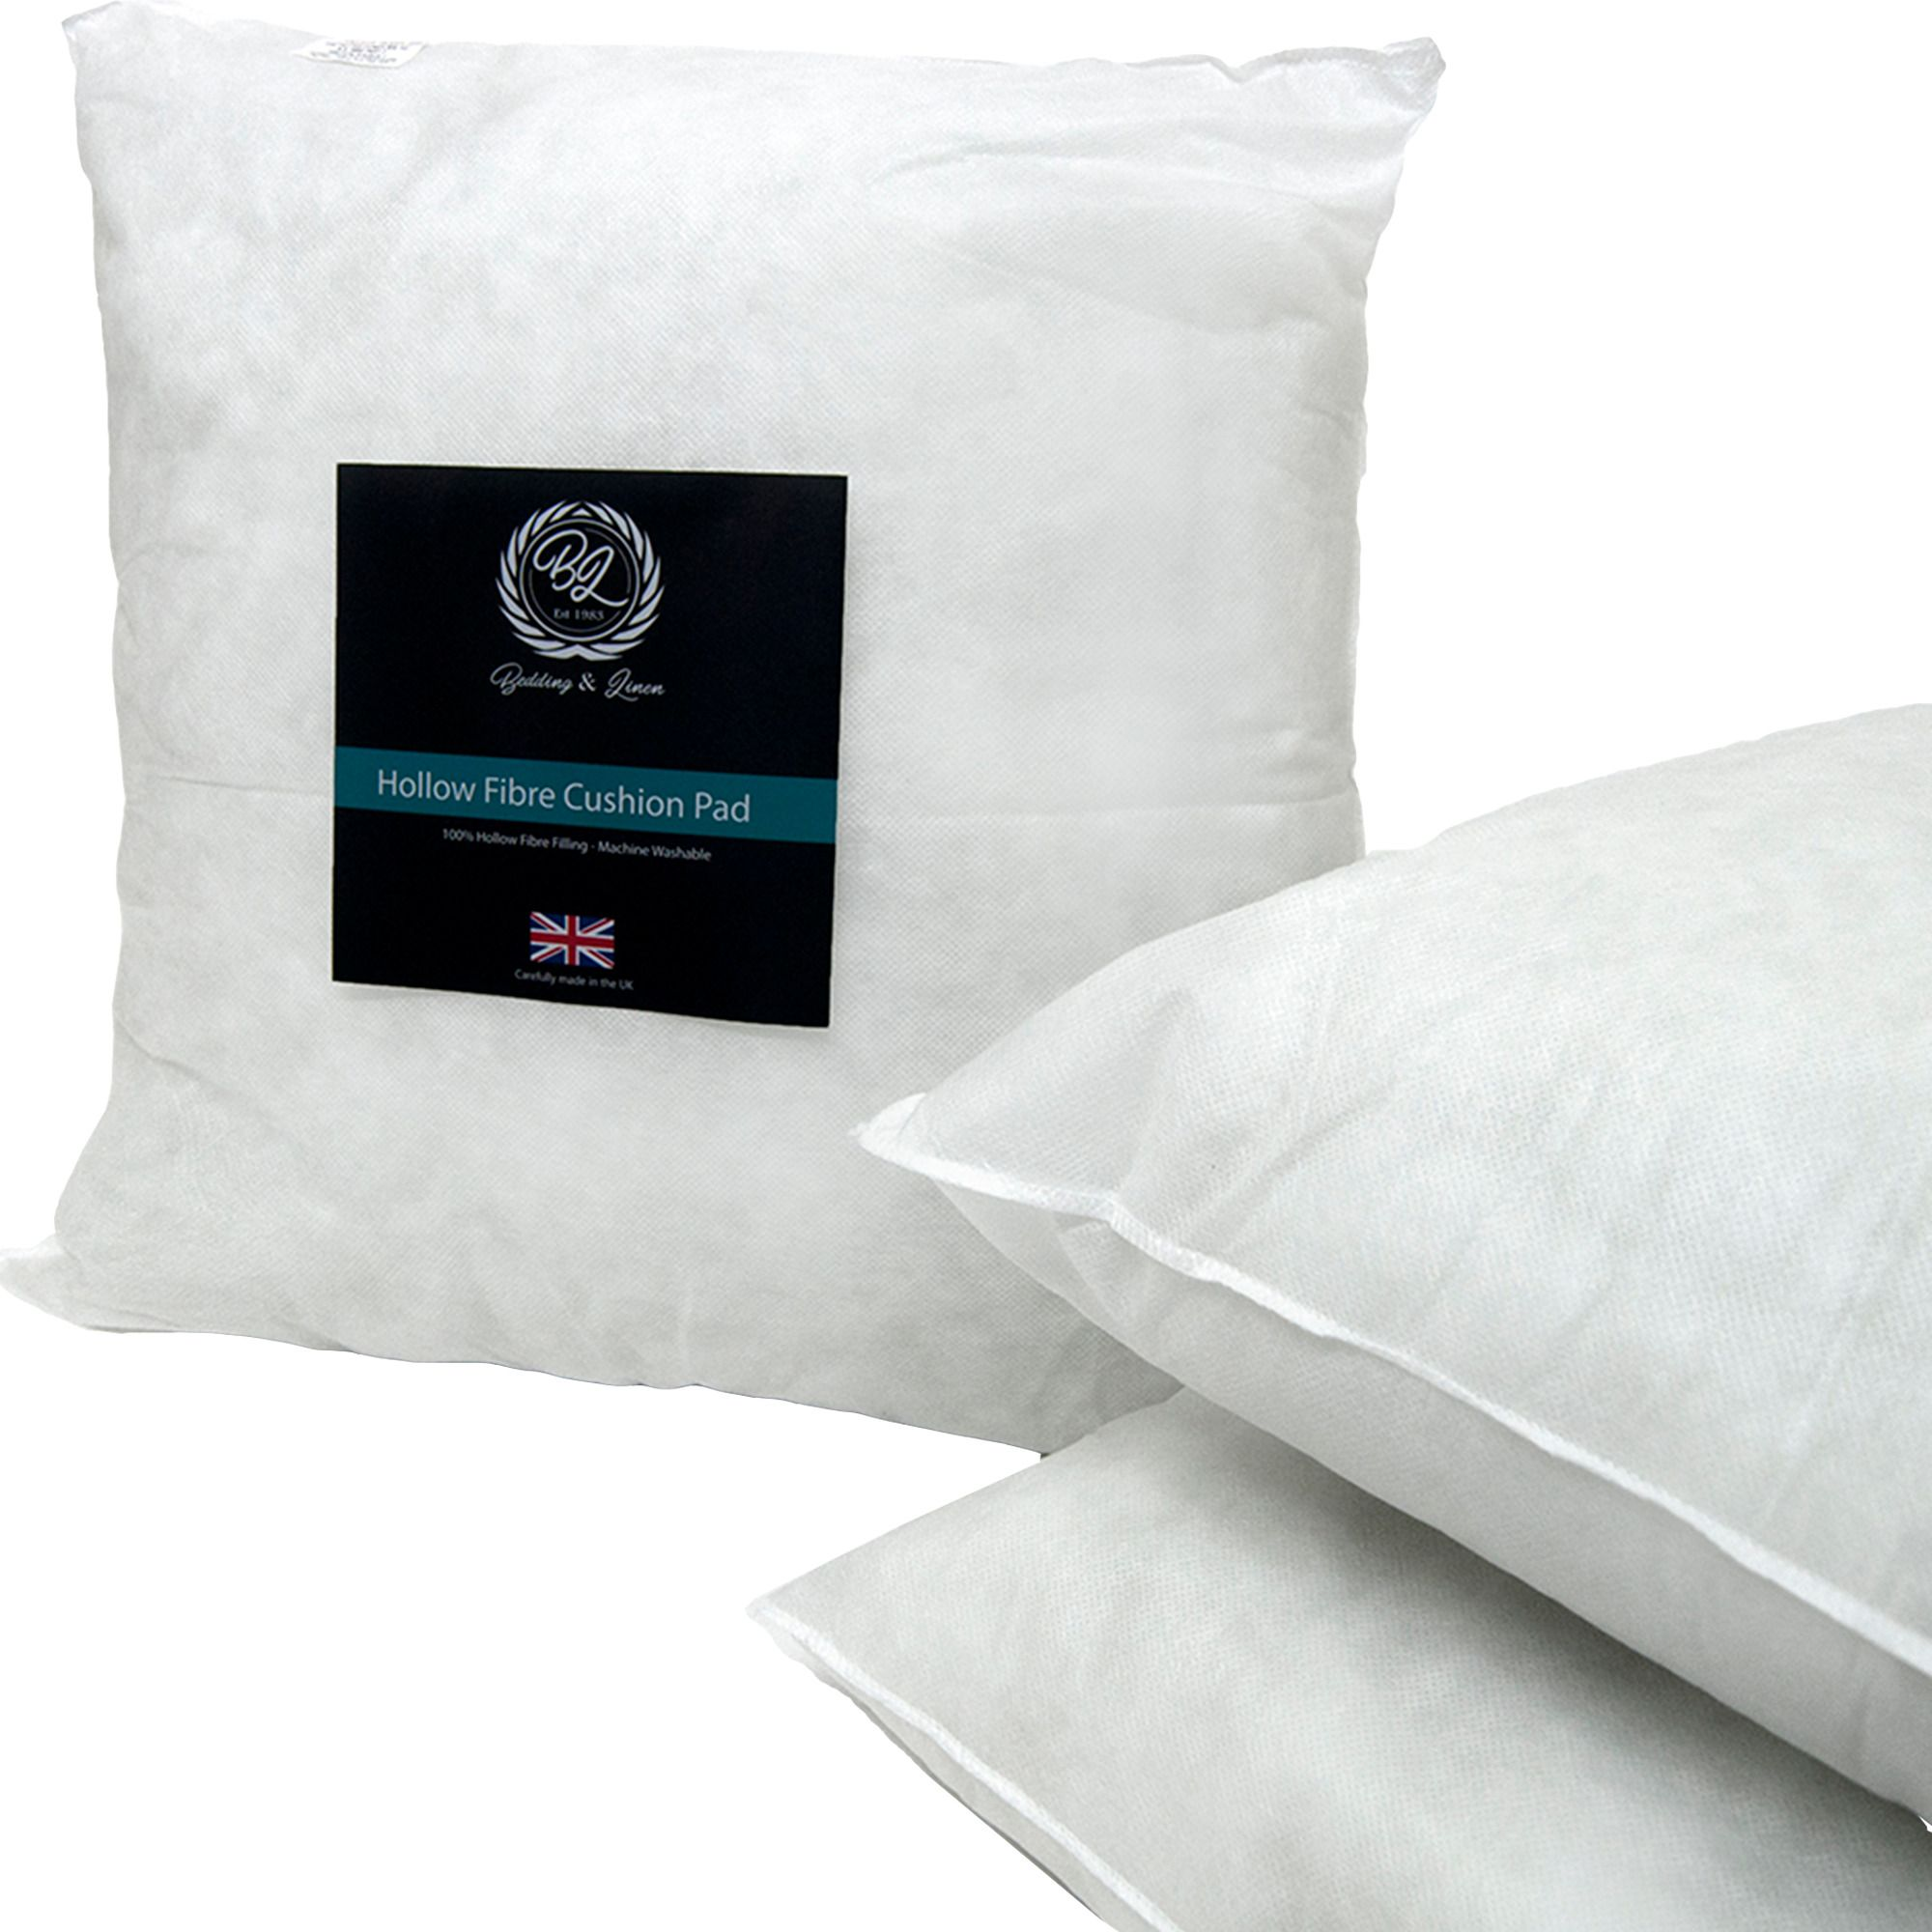 Hotel Quality Hollow Fibre Cushion Pads Insert Fillers Inners